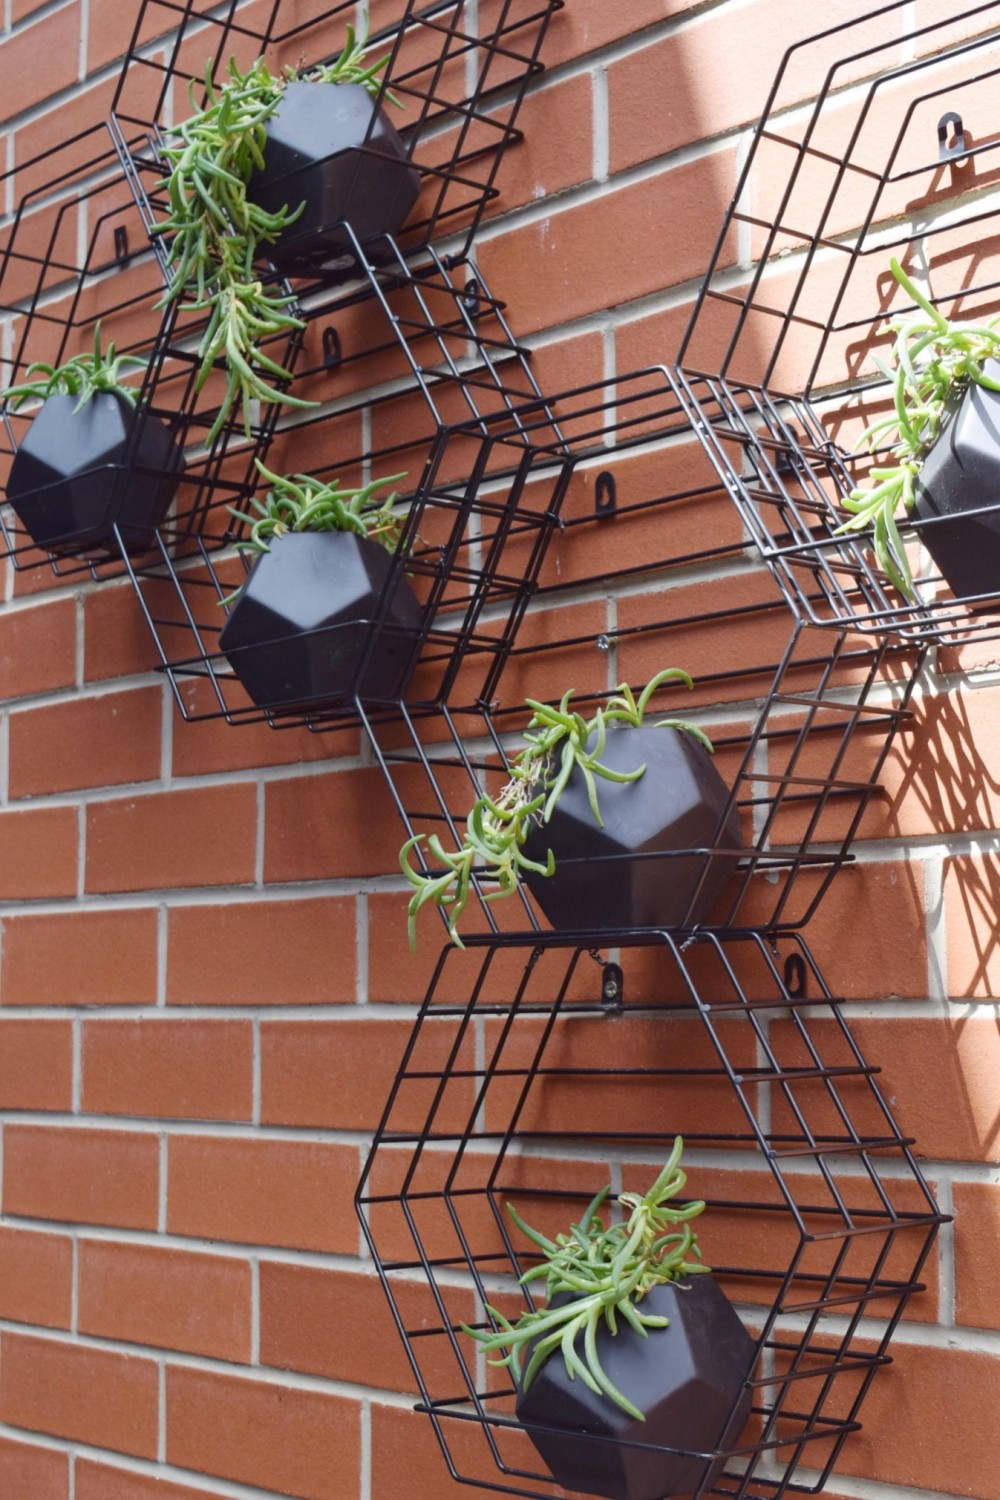 Outdoor wall hanging Kmart hacks